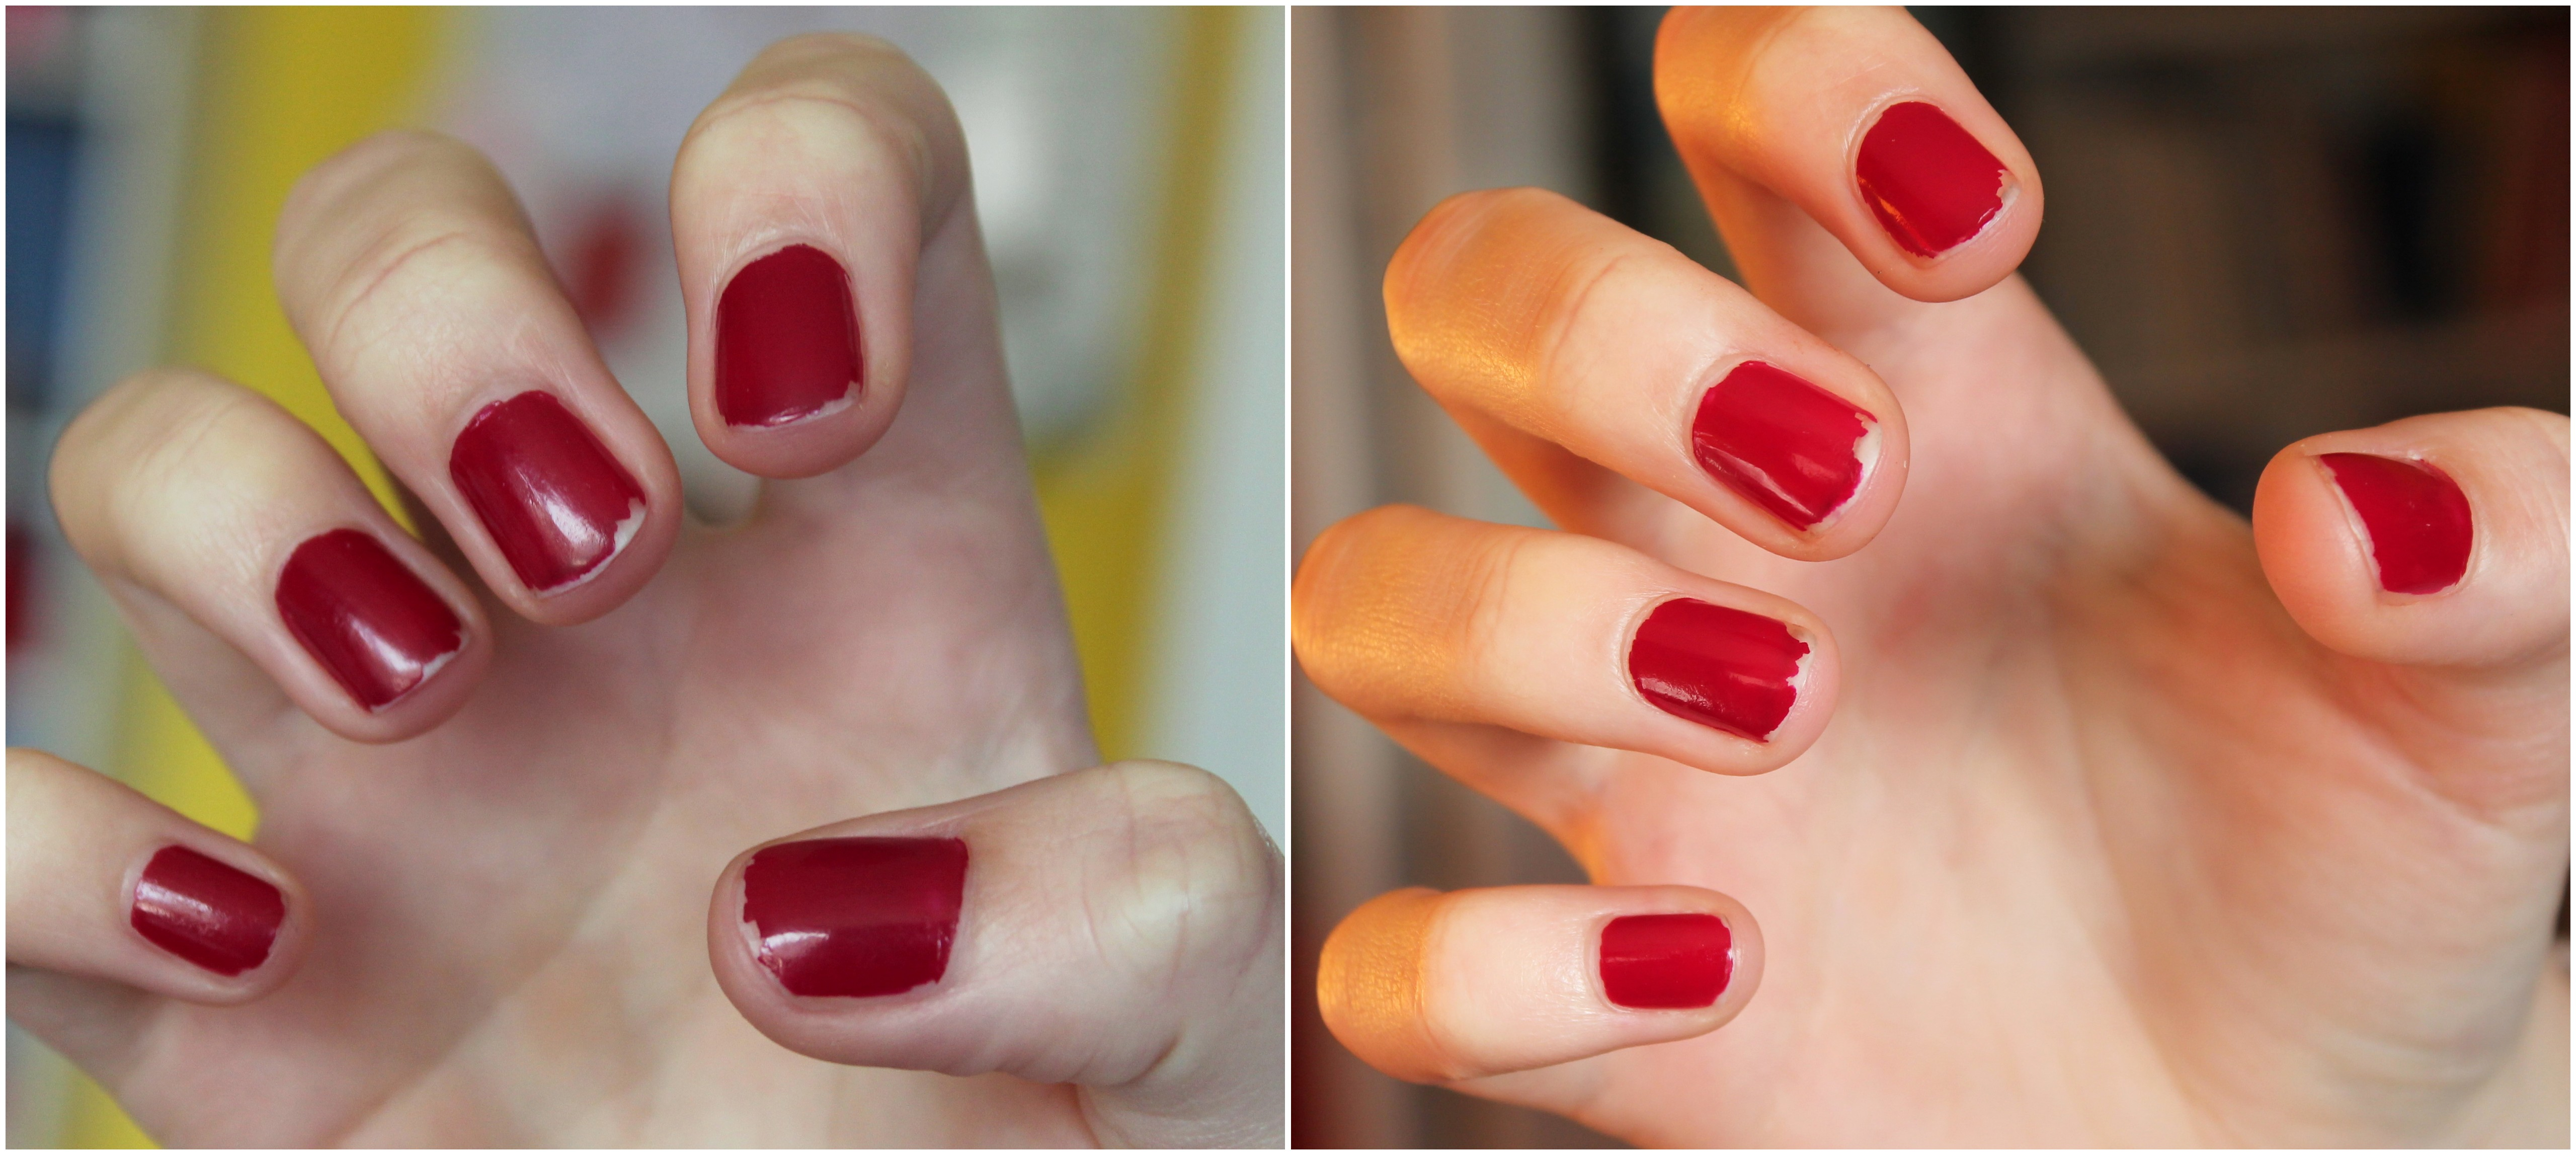 Review: Bourjois Paris 10 Days No Chips Nail Polishes | Make Up Your ...